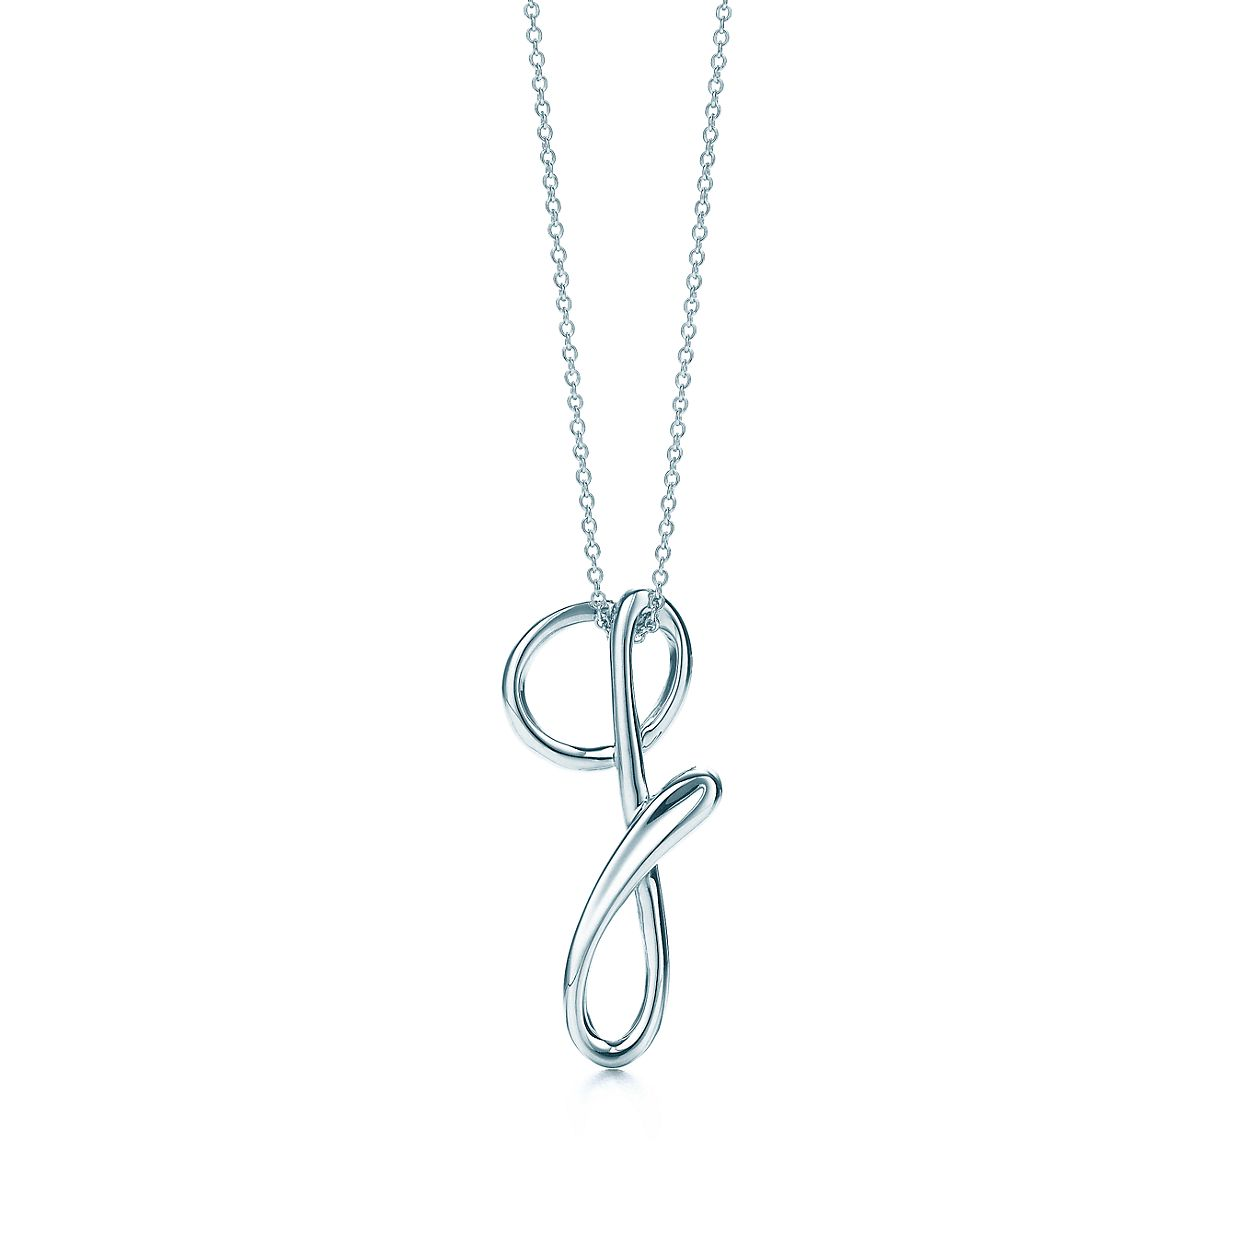 Elsa peretti letter x pendant in sterling silver small size x elsa peretti letter x pendant in sterling silver small size x tiffany co aloadofball Choice Image